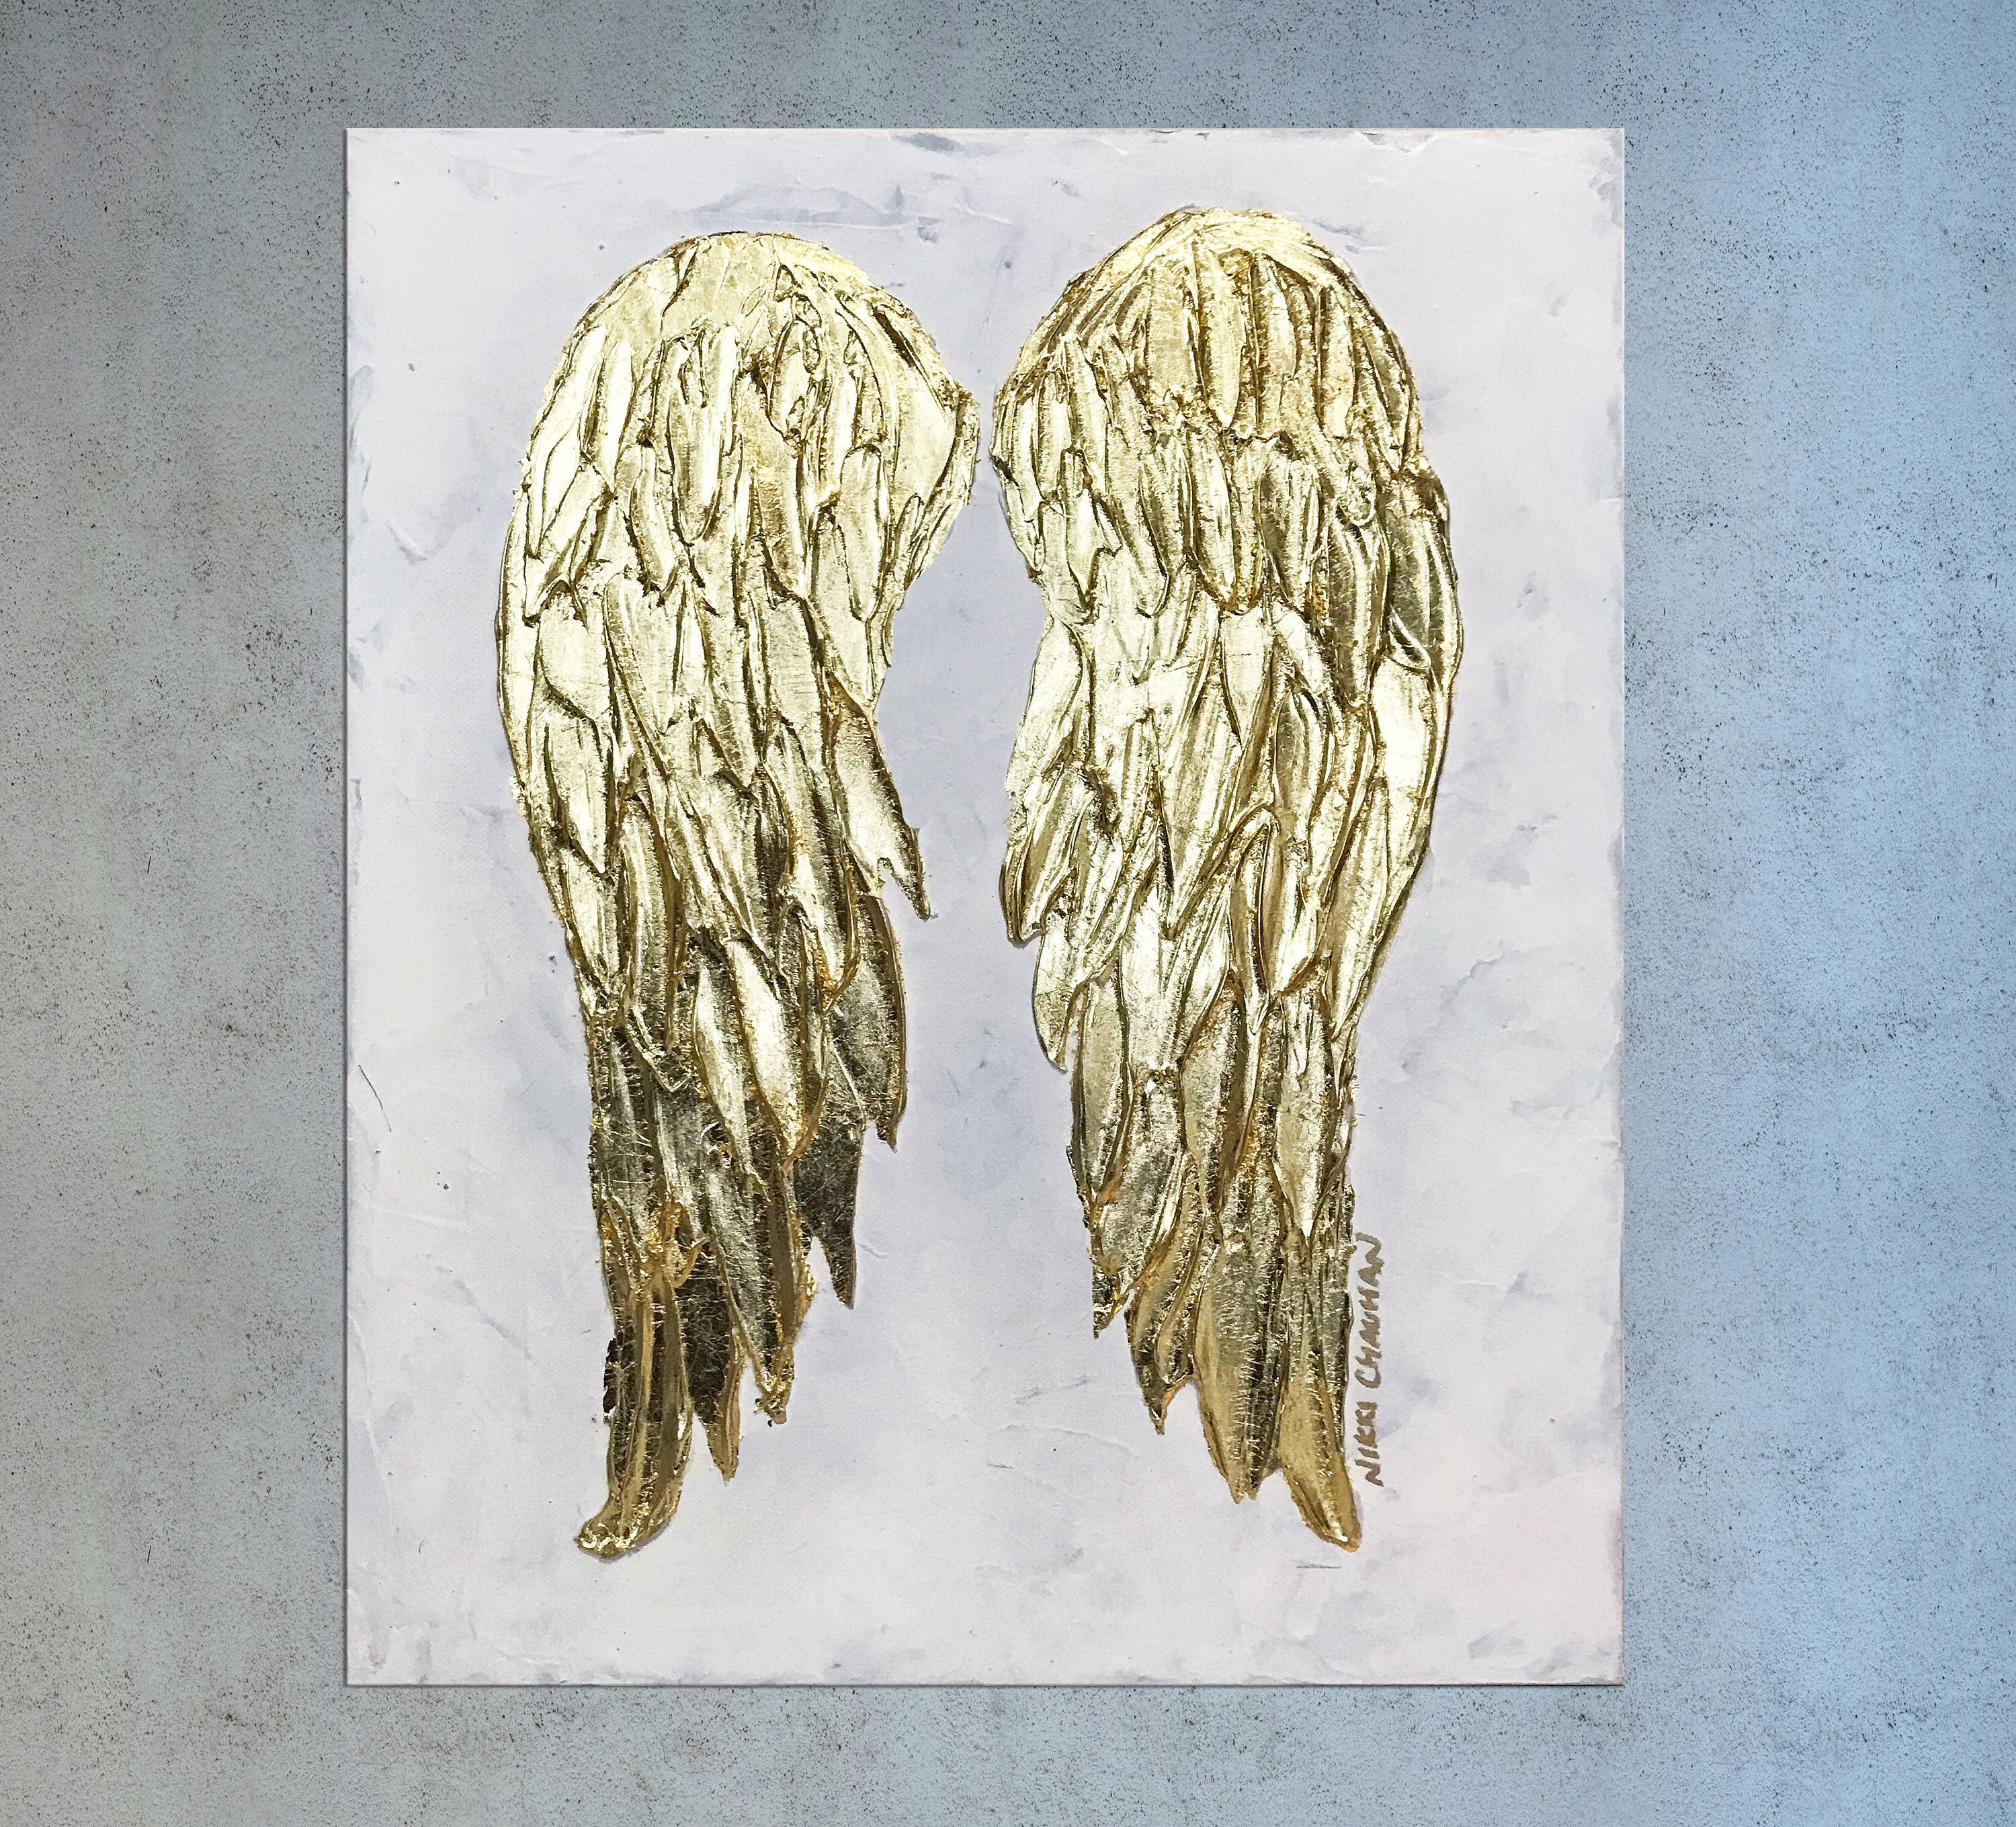 Angel Wings Painting On Canvas Gold Feather Chic Decor Etsy Angel Wings Painting Gold Leaf Art Angel Wings Wall Decor